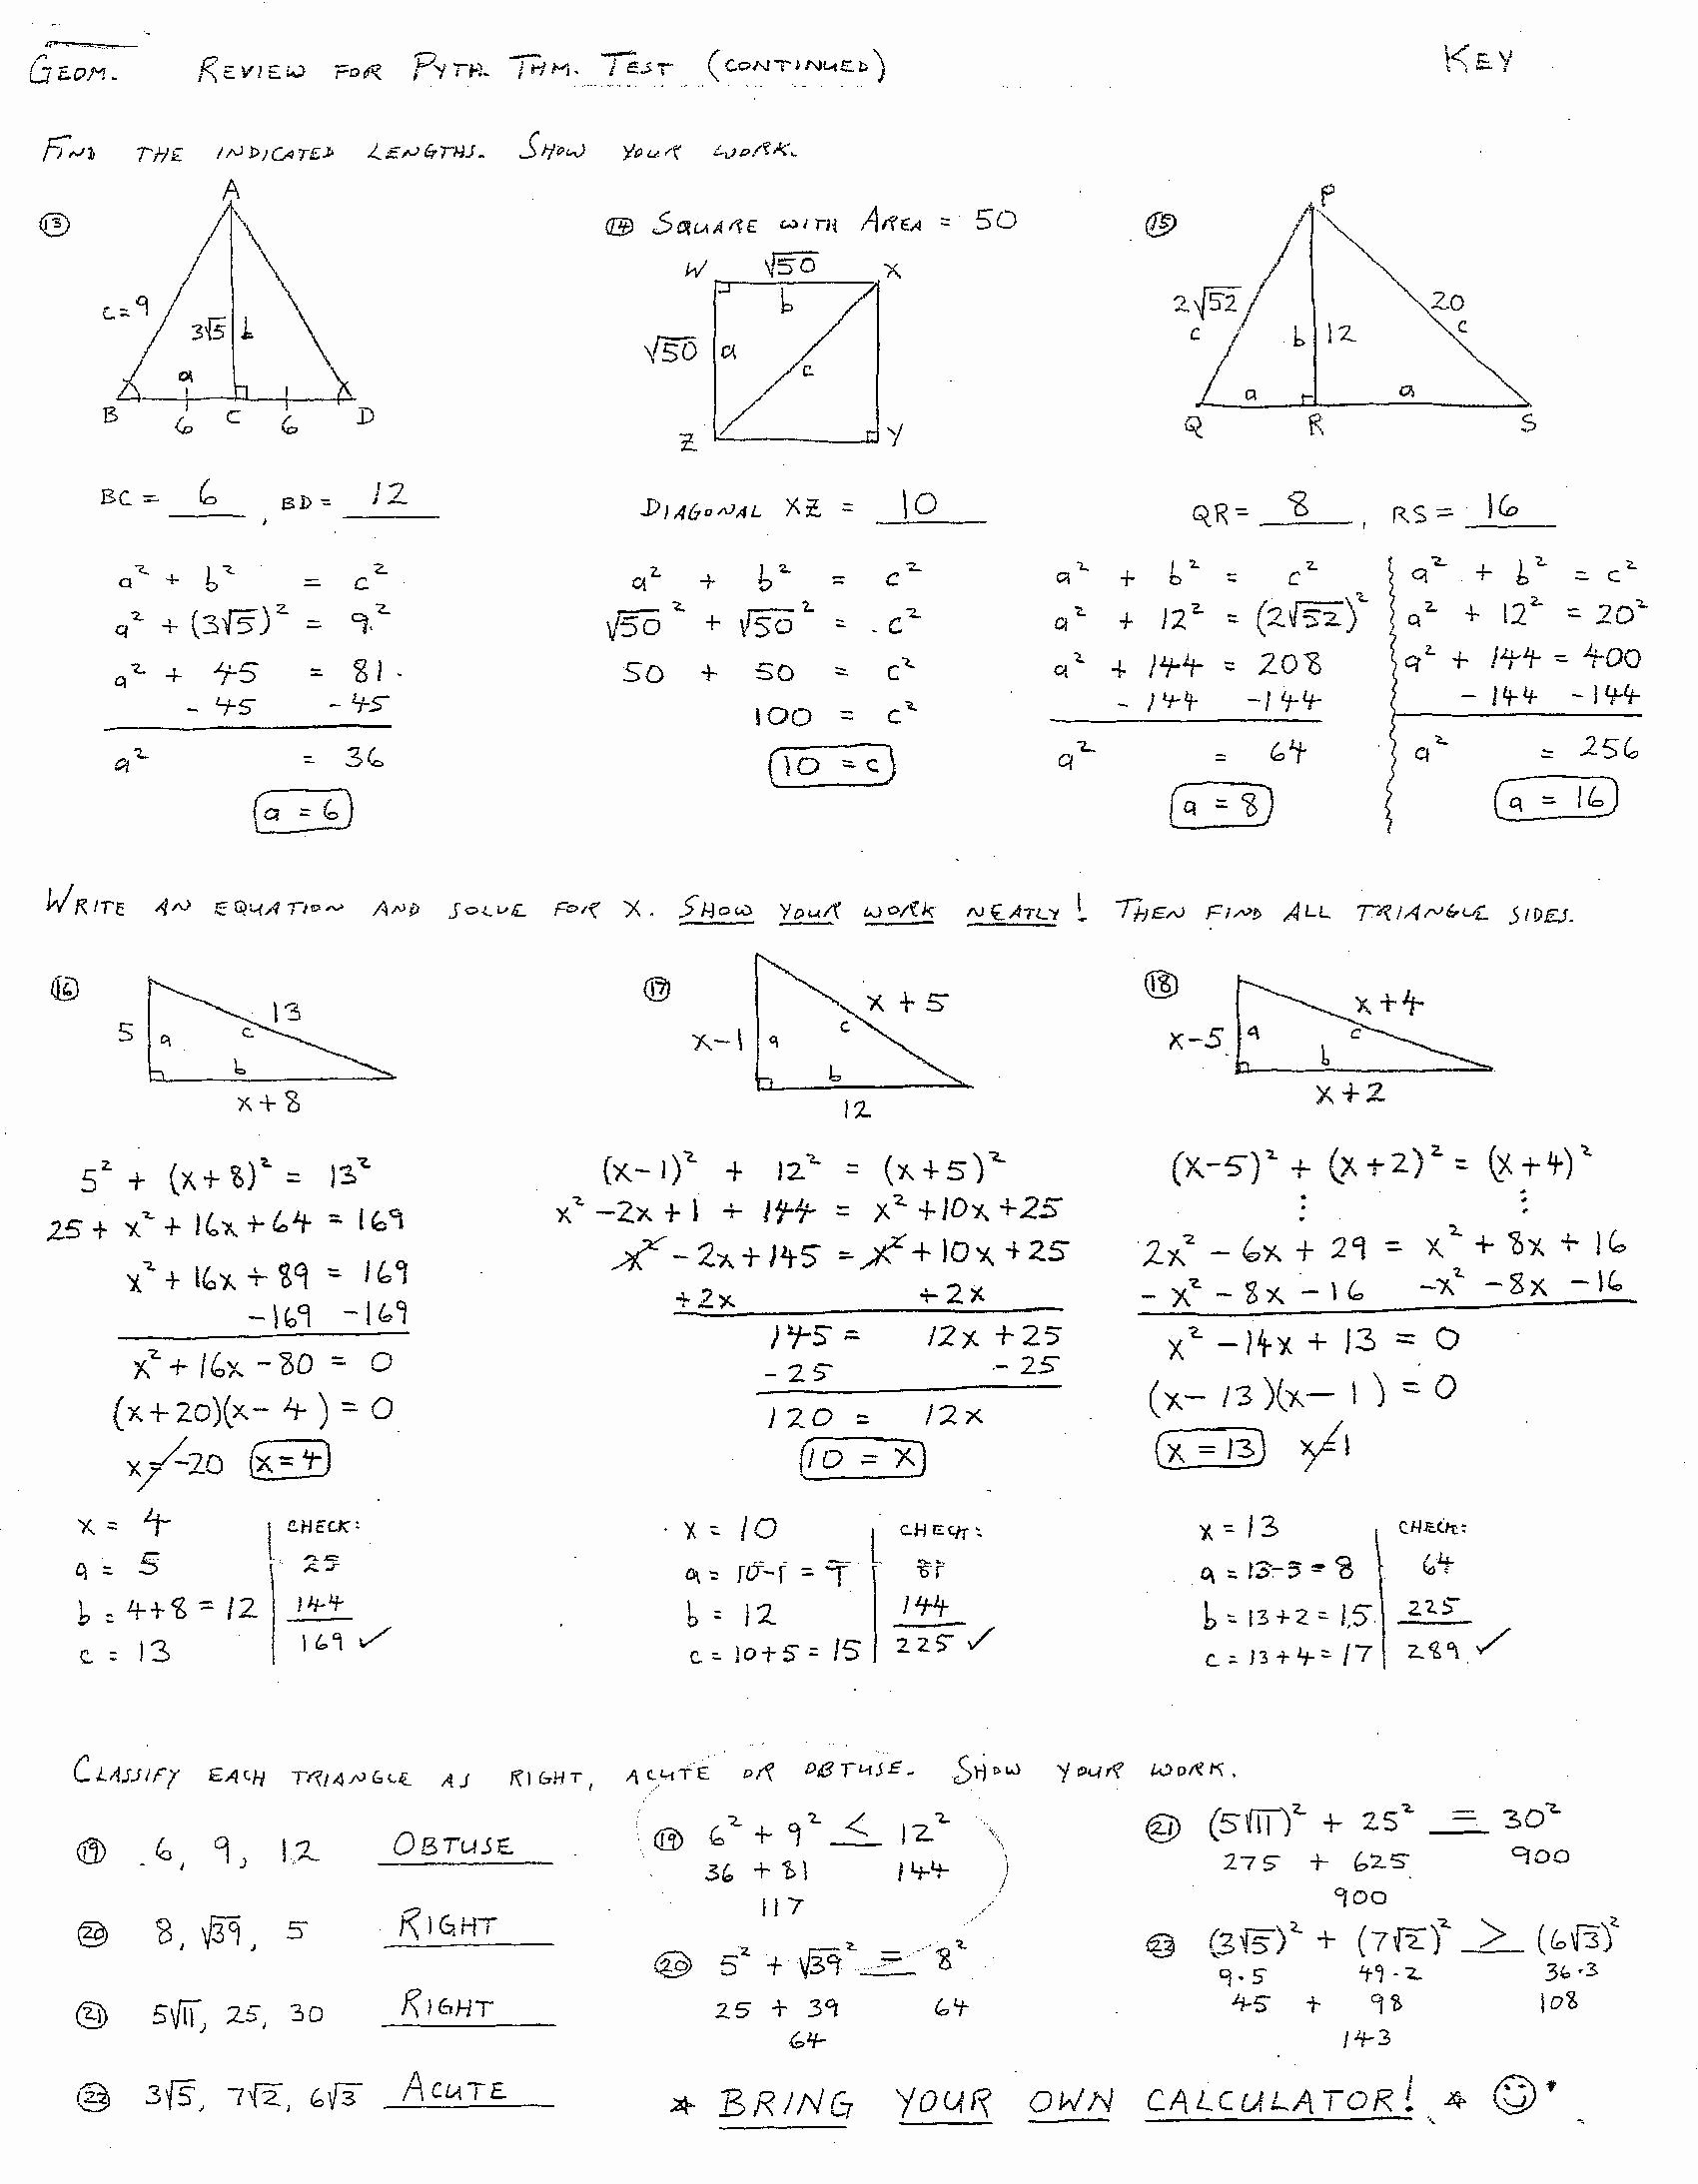 Proving Triangles Congruent Worksheet Answers Best Of 30 Triangle Congruence Worksheet Answer Key Worksheet